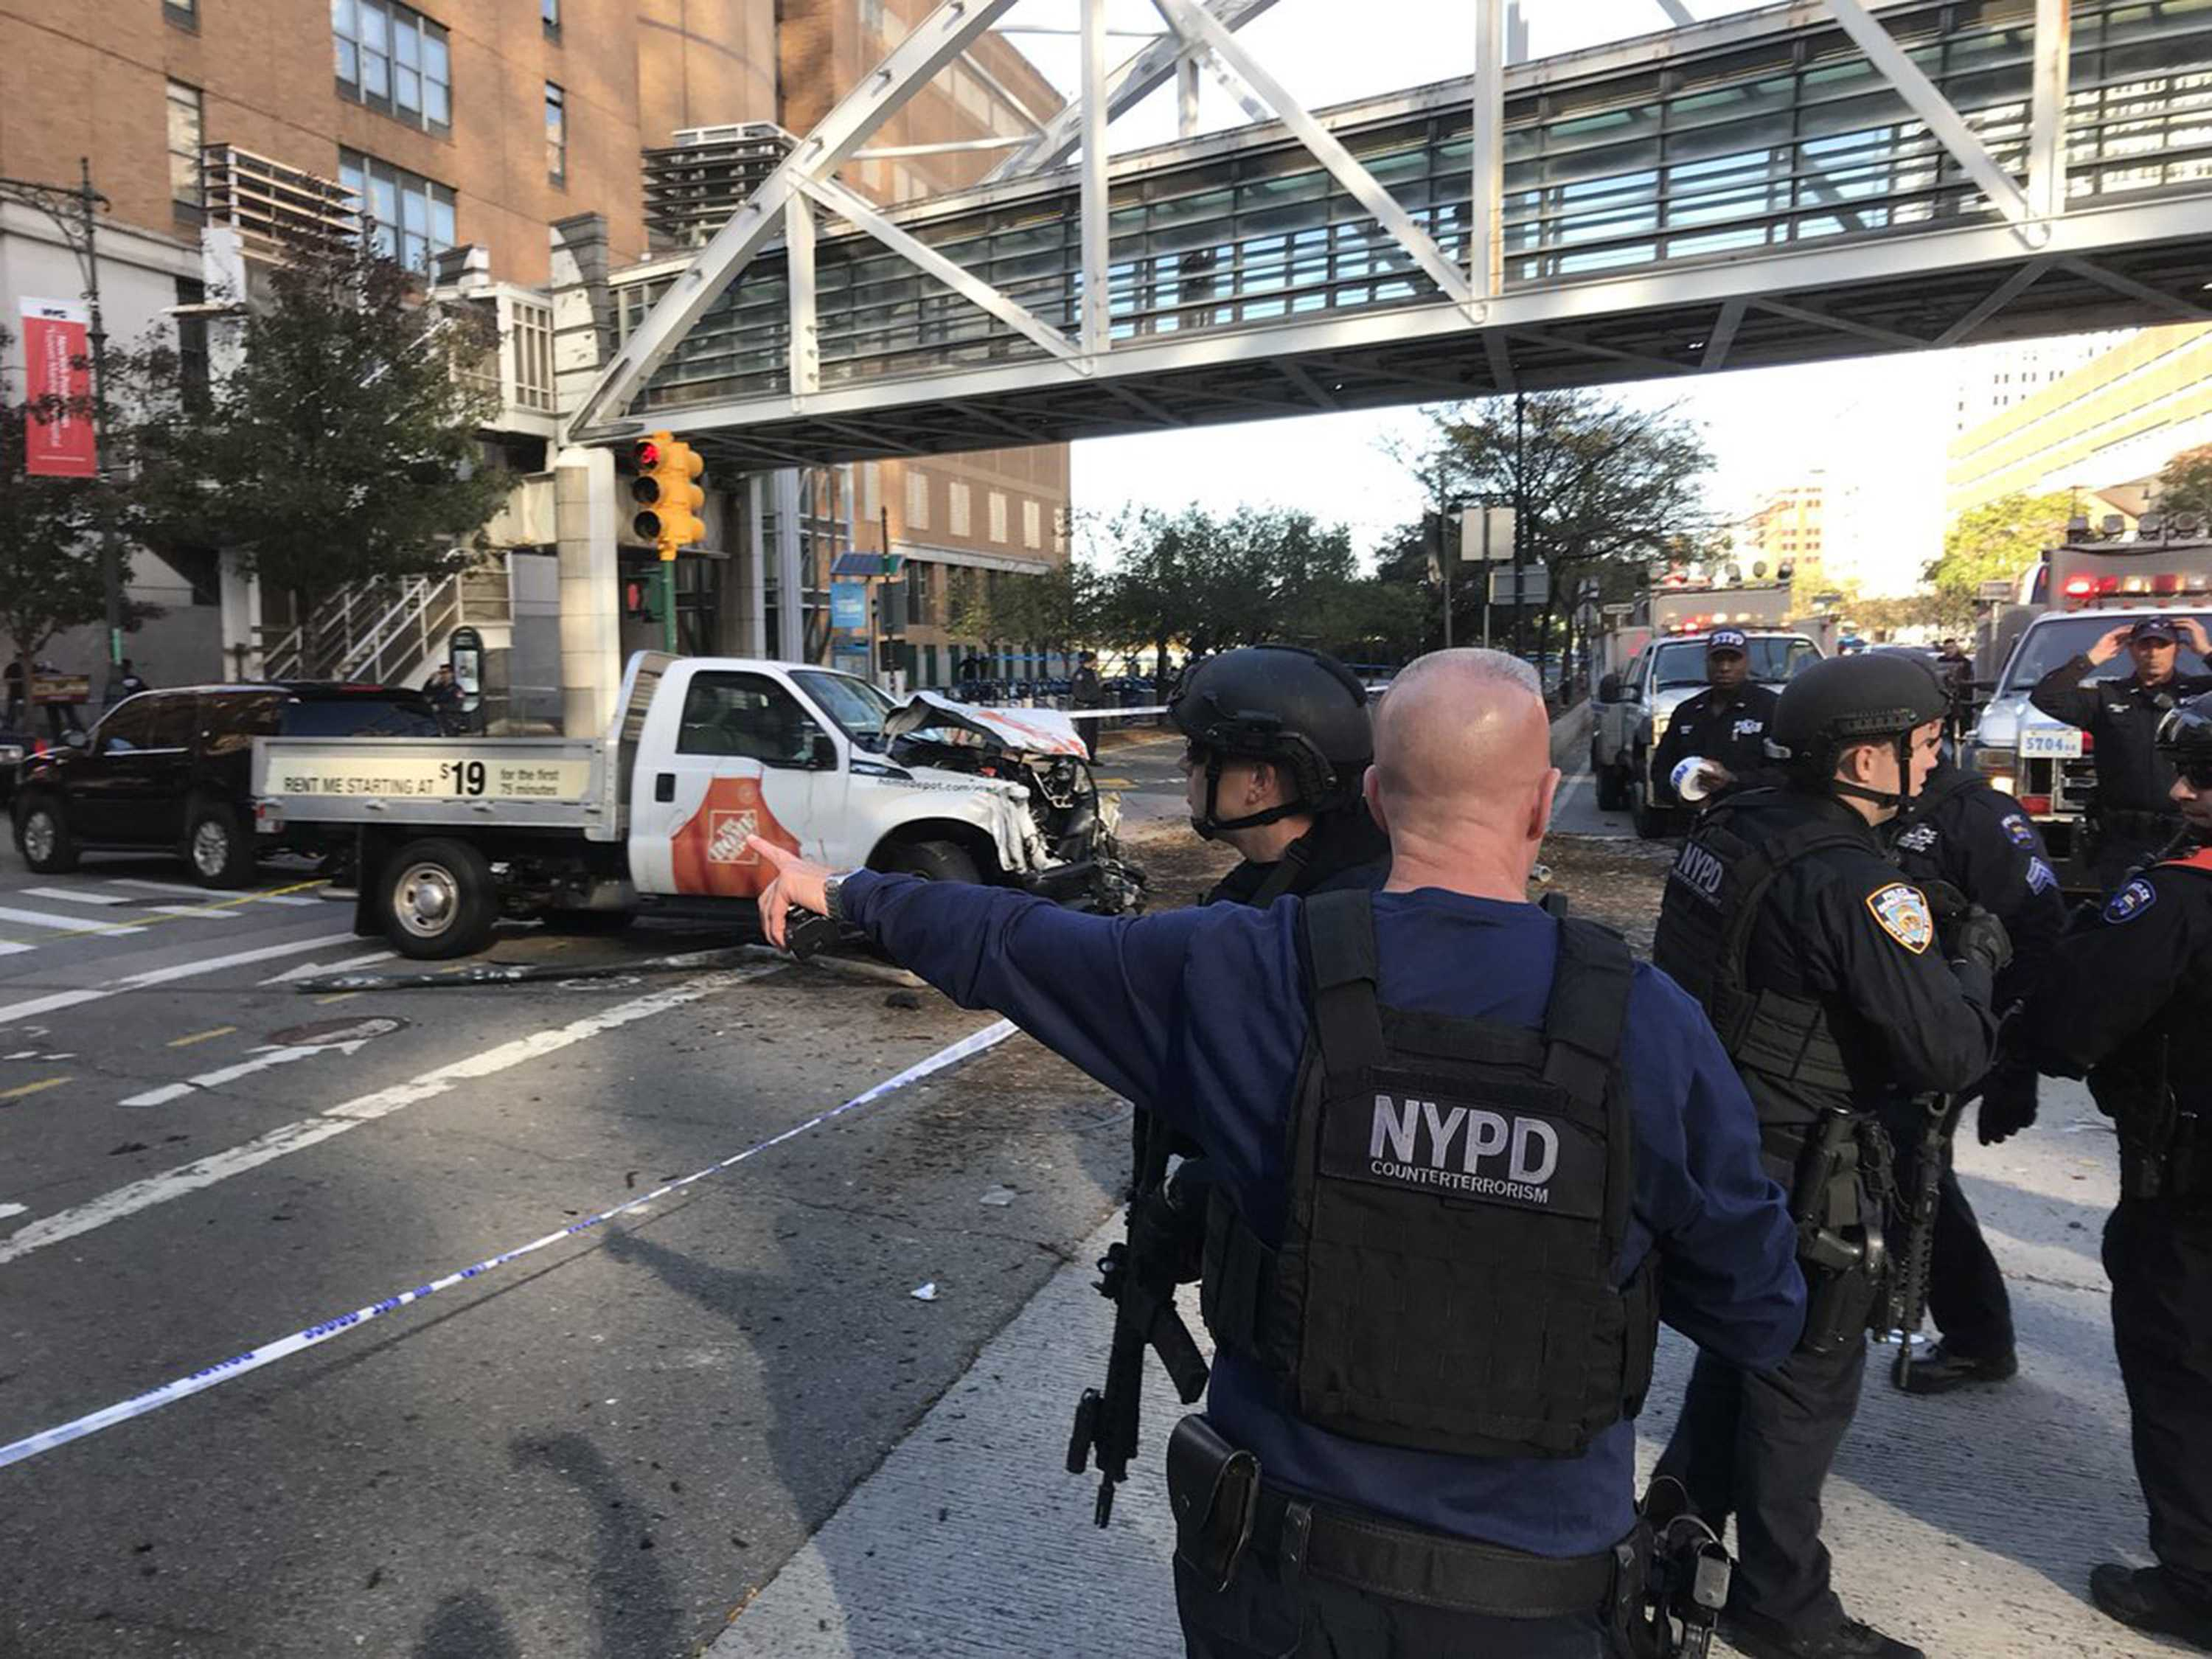 The New York Police Department reported one man was in custody after initial reports of gunfire set off a mad scramble in the downtown area. (Martin Speechley/NYPD)